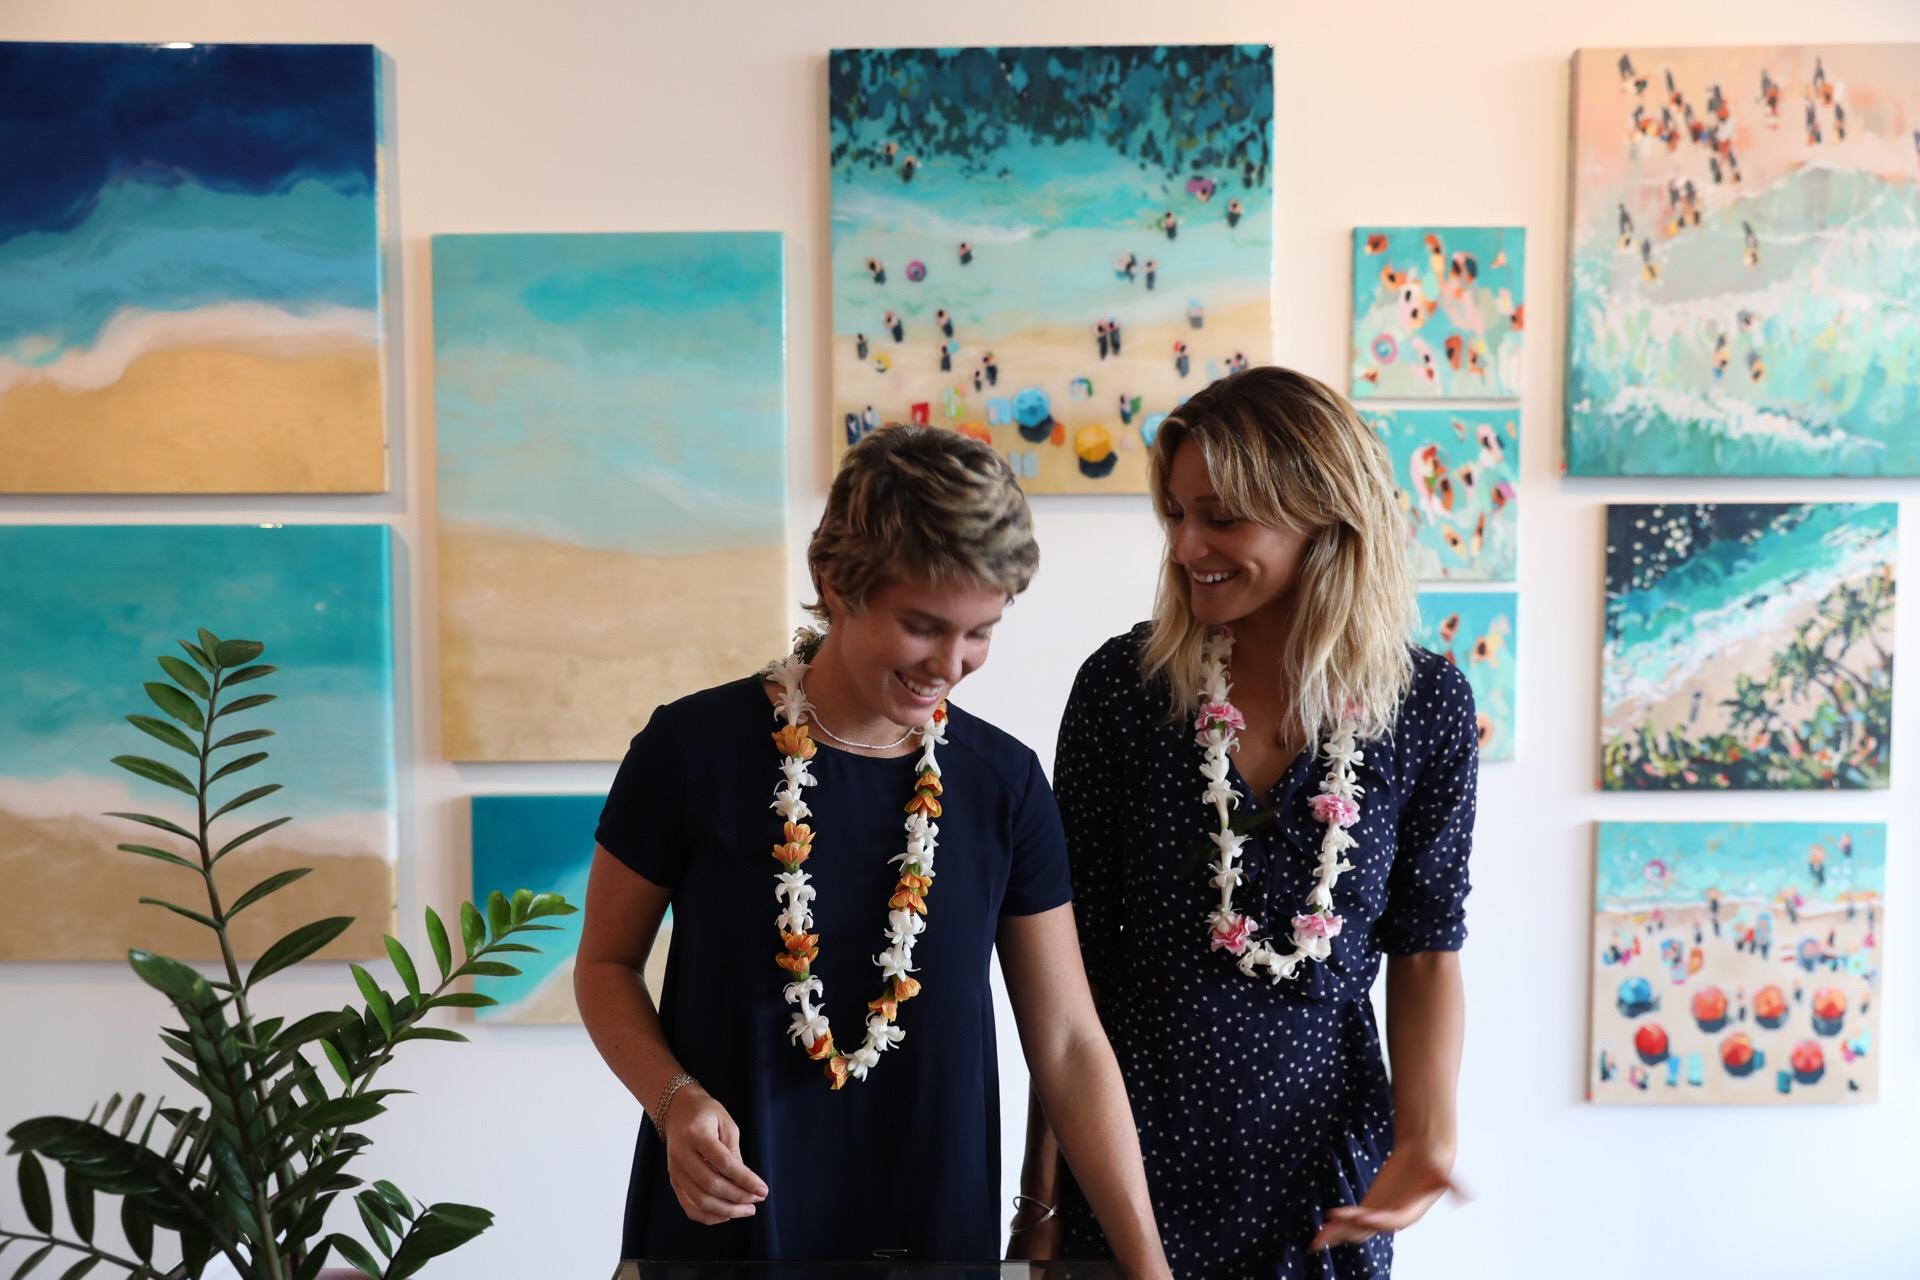 Nina Brooke & Bree Poort at their Aloha Superette opening evening